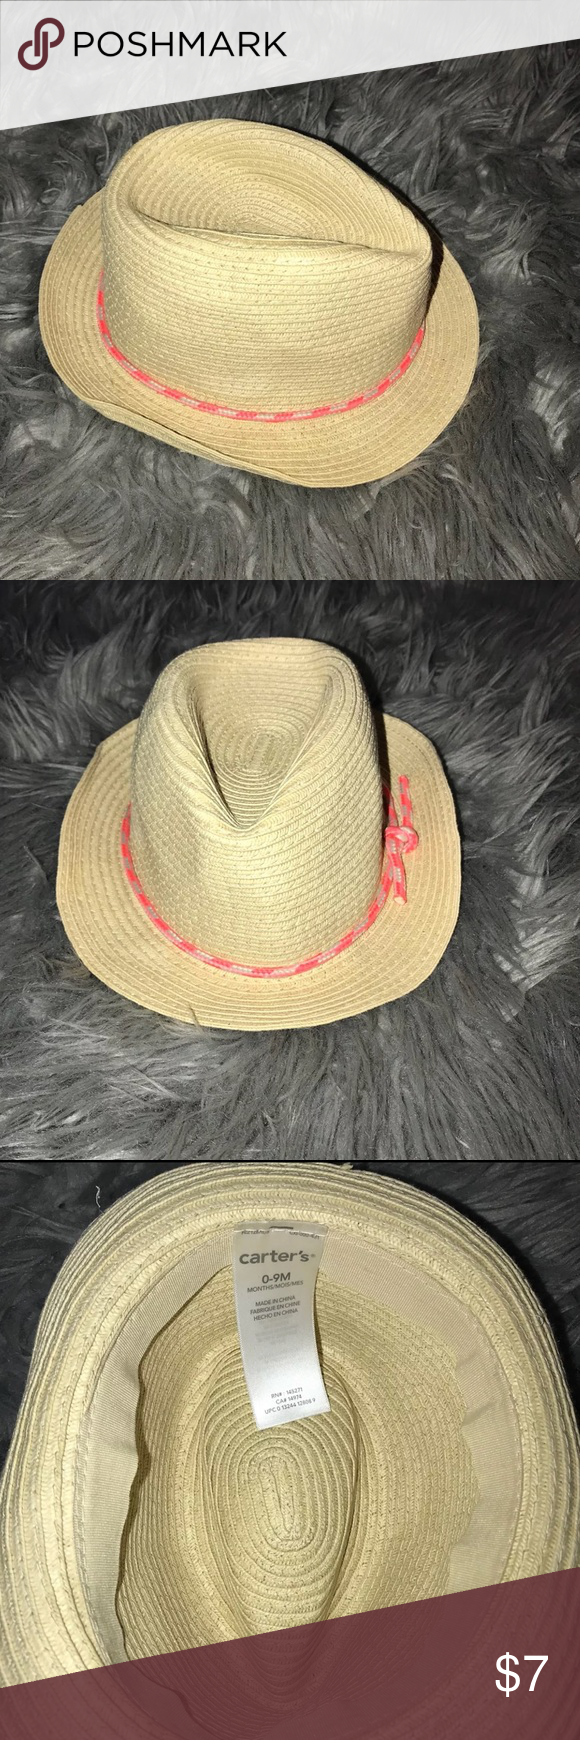 a0c3e7a8cf055 Carter s Baby Girl Straw Summer Hat Size 0-9 month Carter s Baby Girl Straw  Summer Hat Size 0-9 months.  ships same or next day Smoke   pet friendly ...